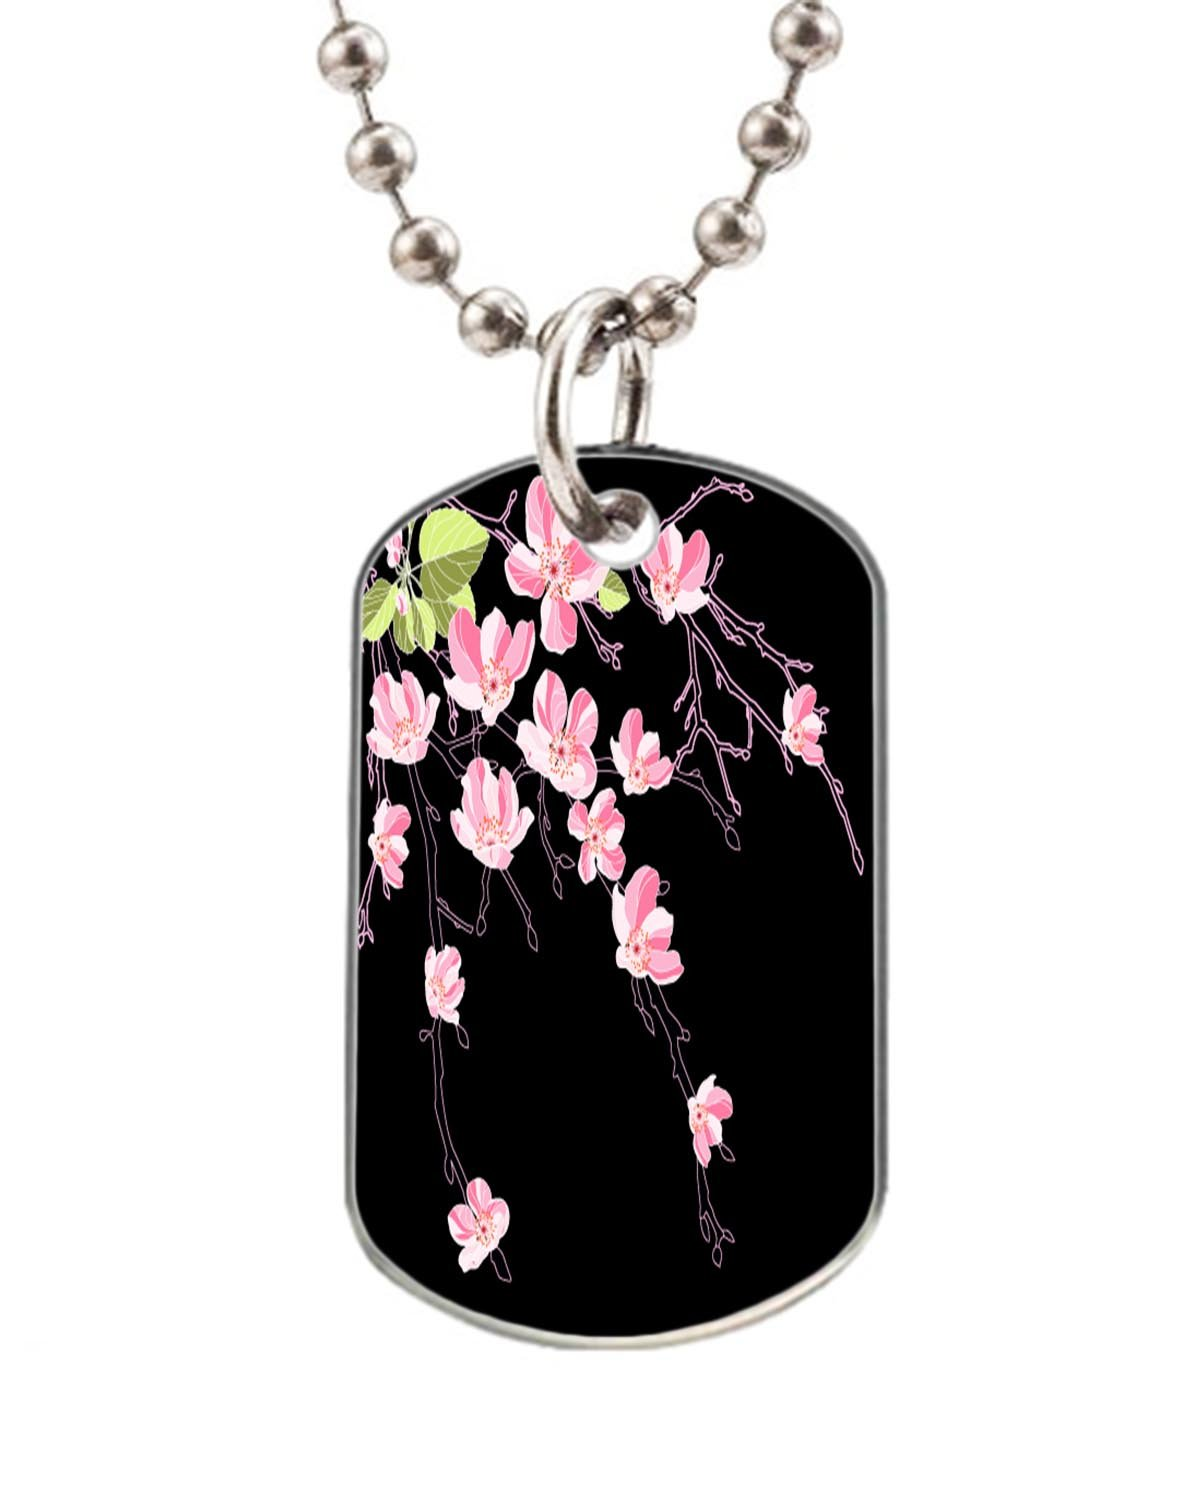 Apple Tree Dog pet tag- Big-Size Oval Dog Pet Tag 1.32 x 2.2 inche with 38  Aluminum Bead Chain